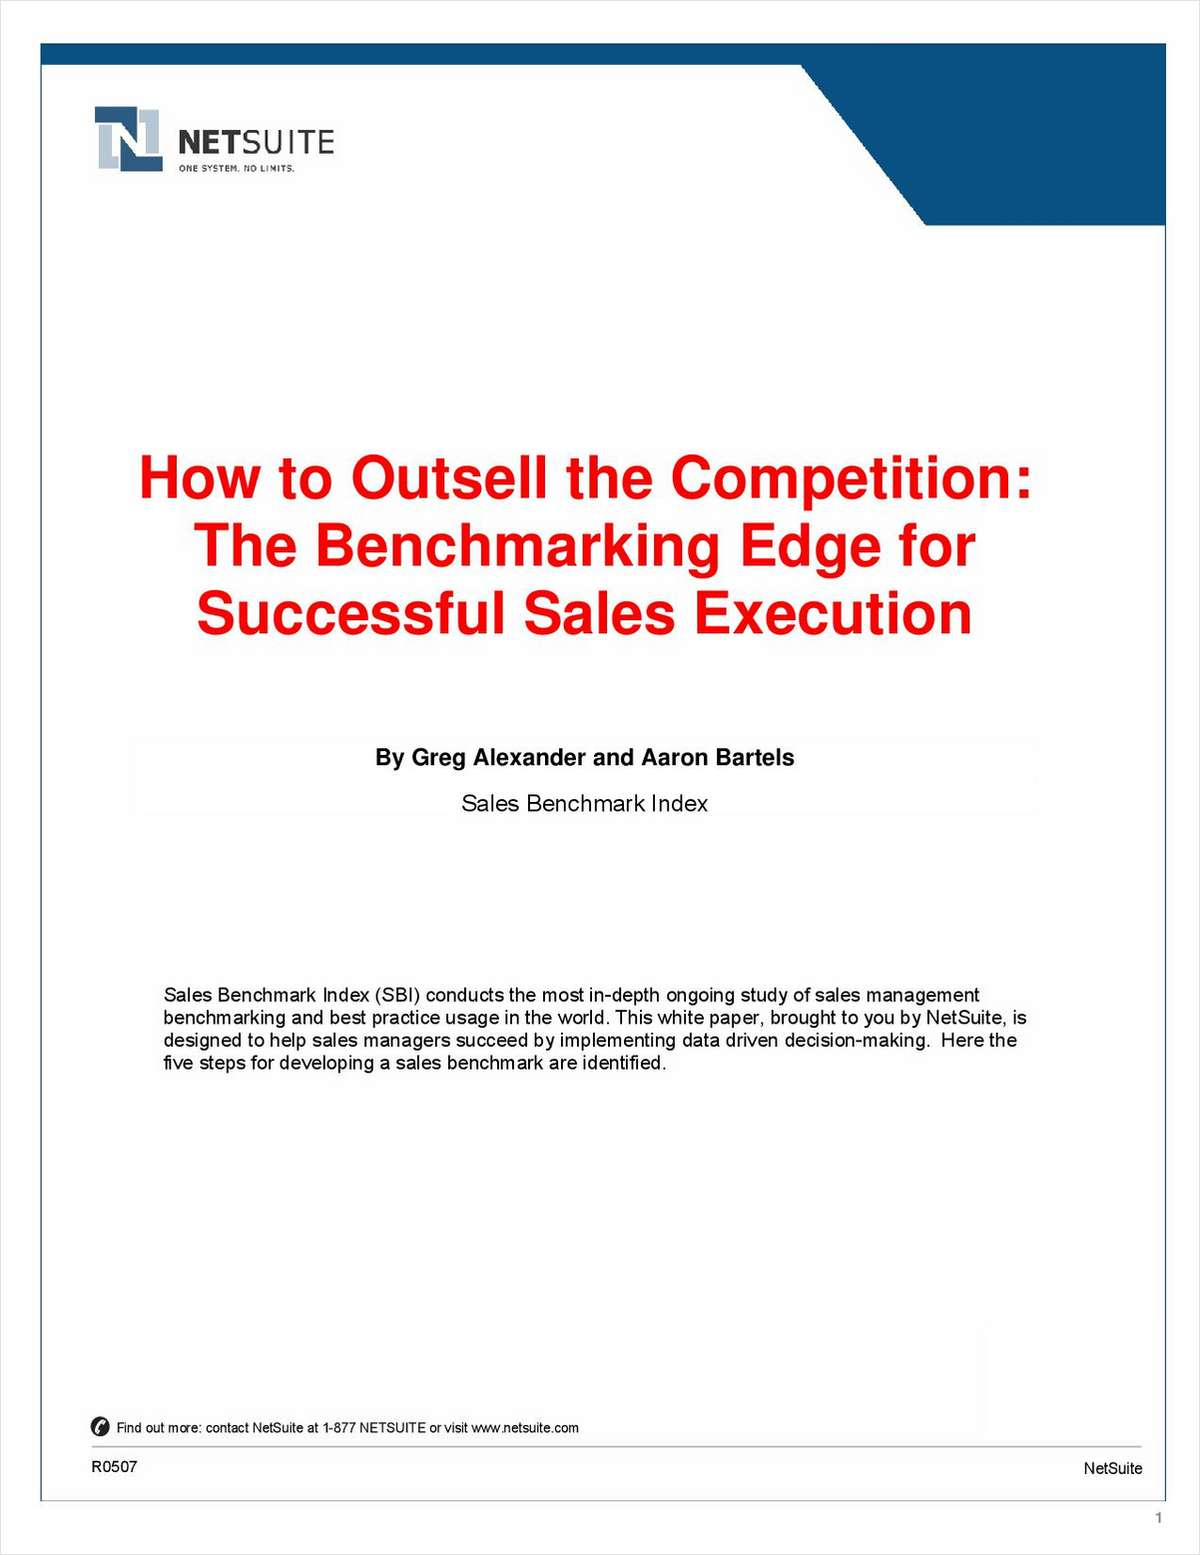 How to Outsell the Competition: The Benchmarking Edge for Successful Sales Execution